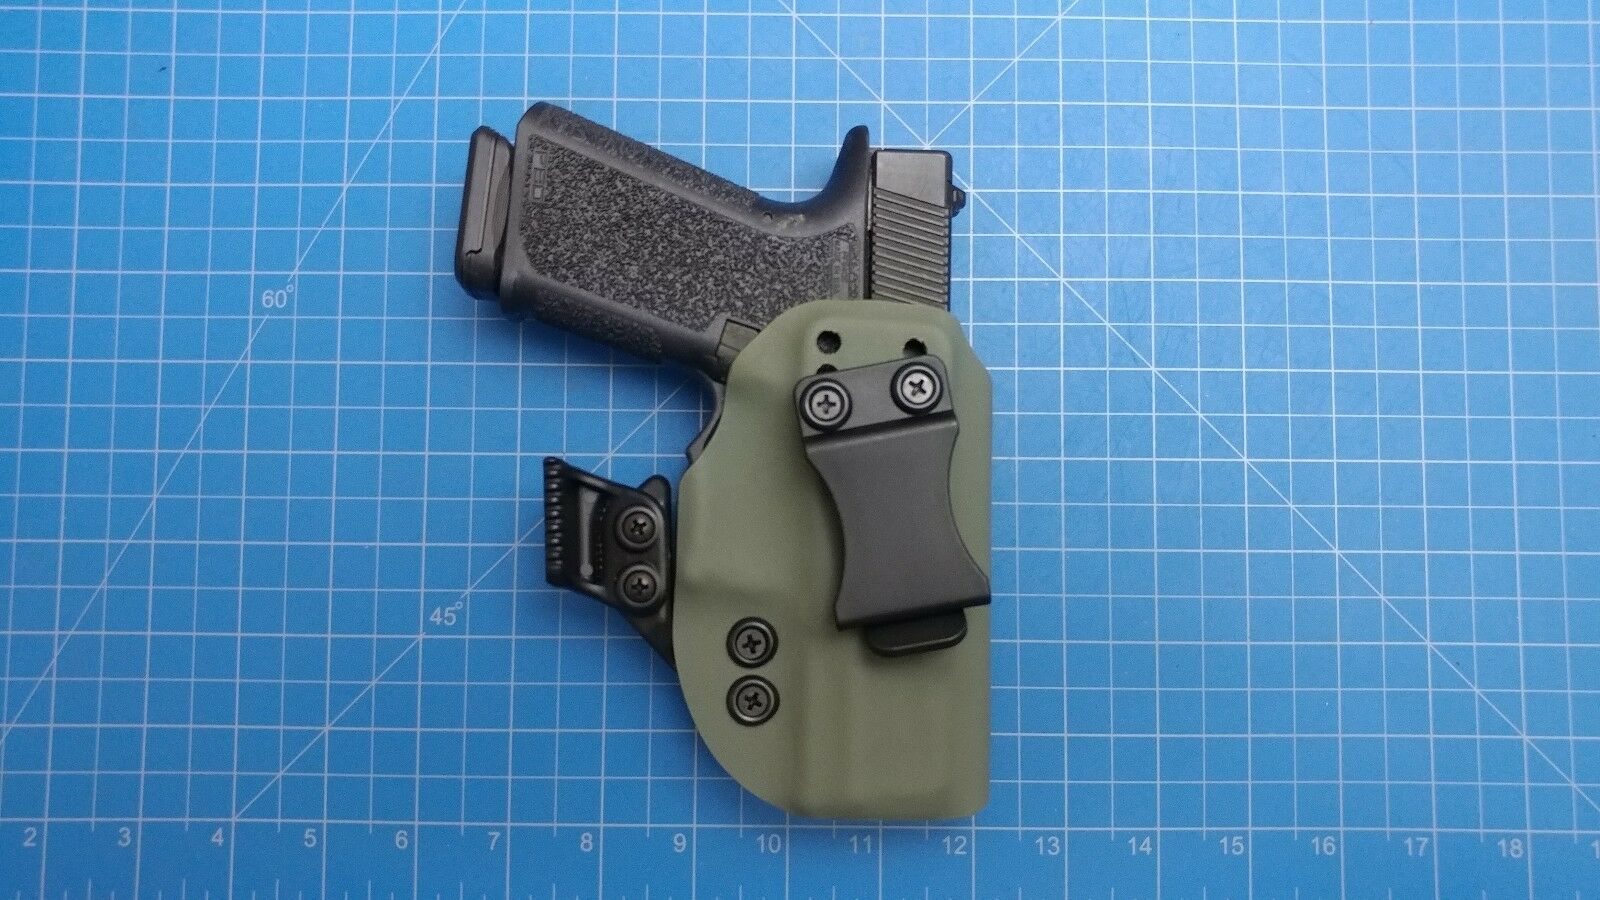 Polymer 80 Pf940c Iwb right hand carry kydex Holster with holster claw foliage